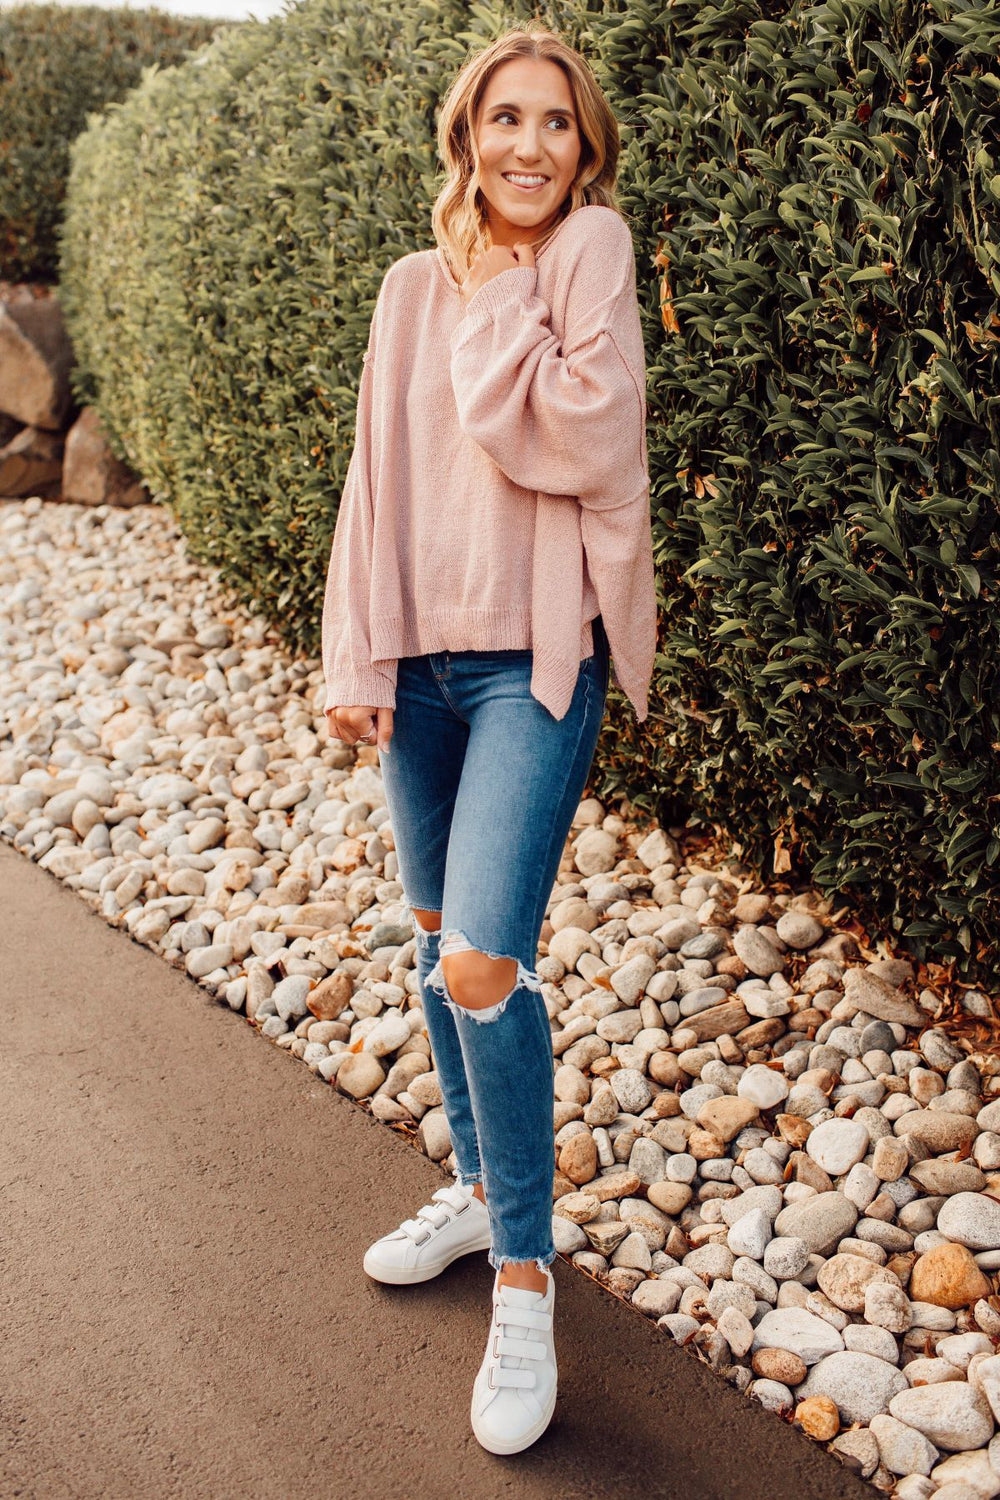 Powder Pink Sweater Inspired by Ashley from Twenties Girl Style